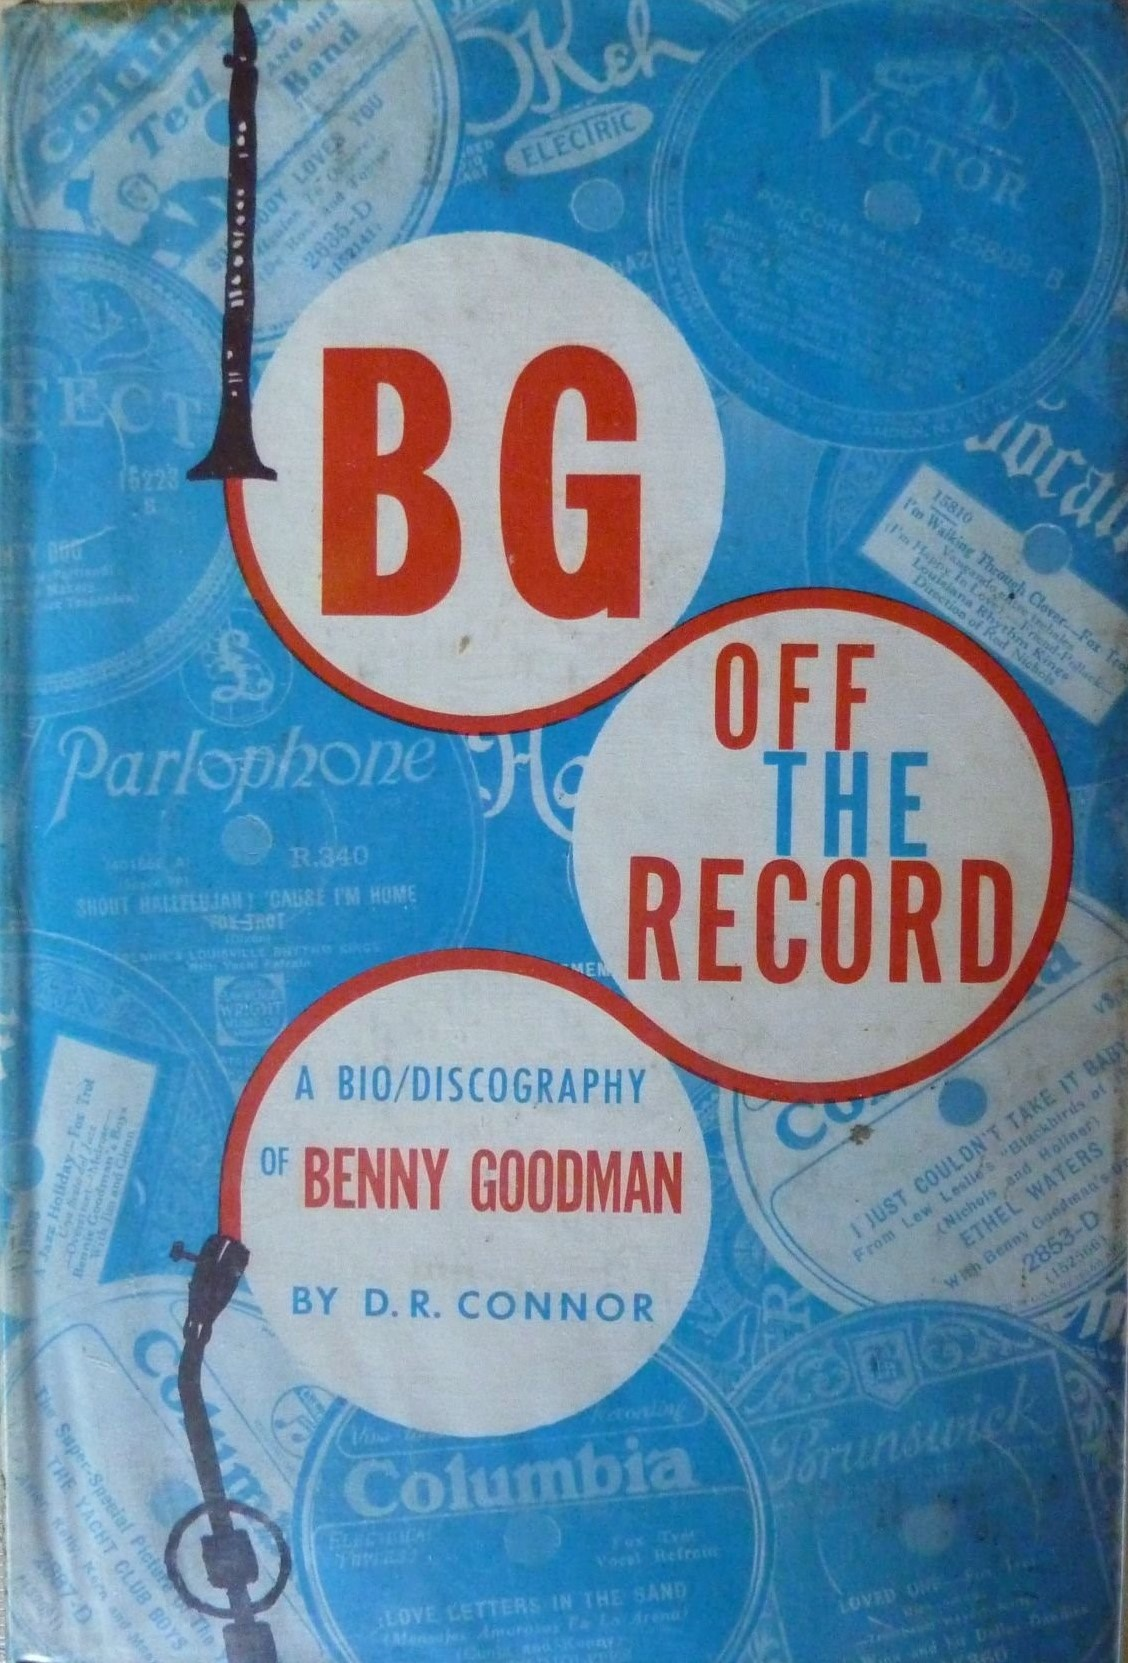 Front cover of Benny Goodman's discography Off the Record